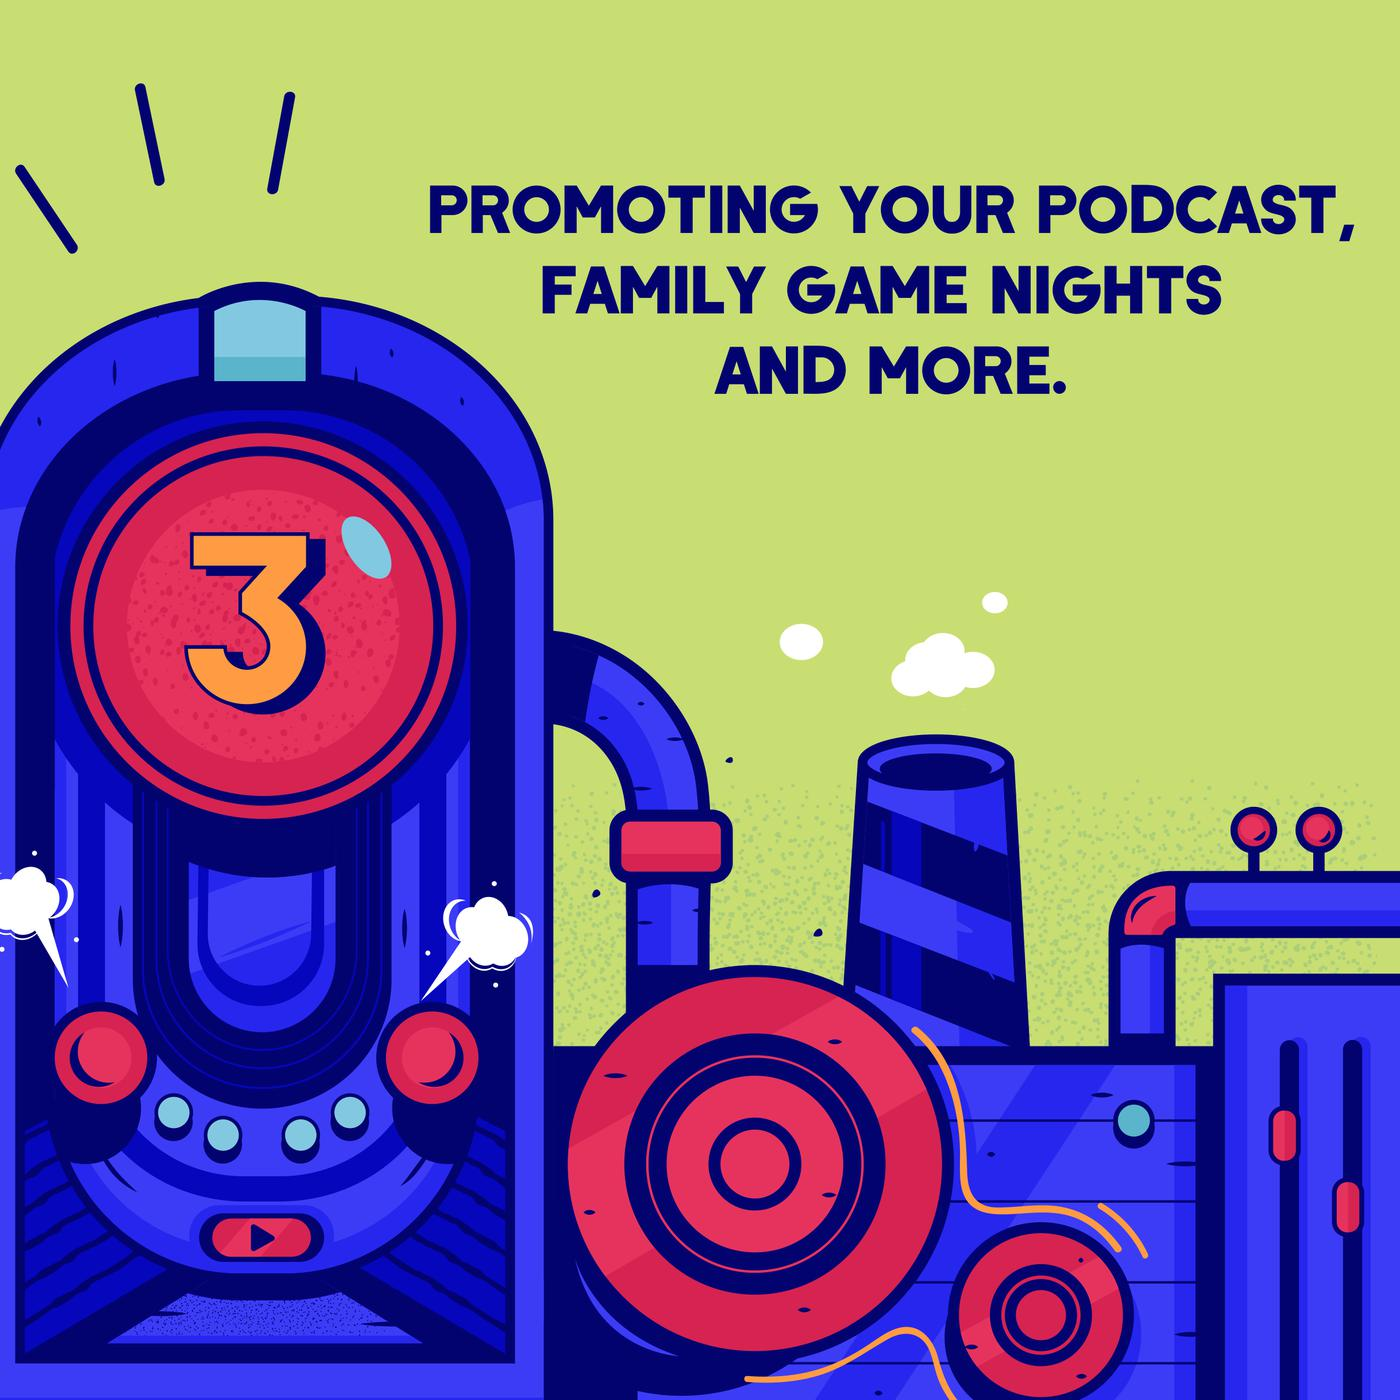 Episode 3 (TWIP) - Promoting Your Podcast, Family Game Nights, and More.